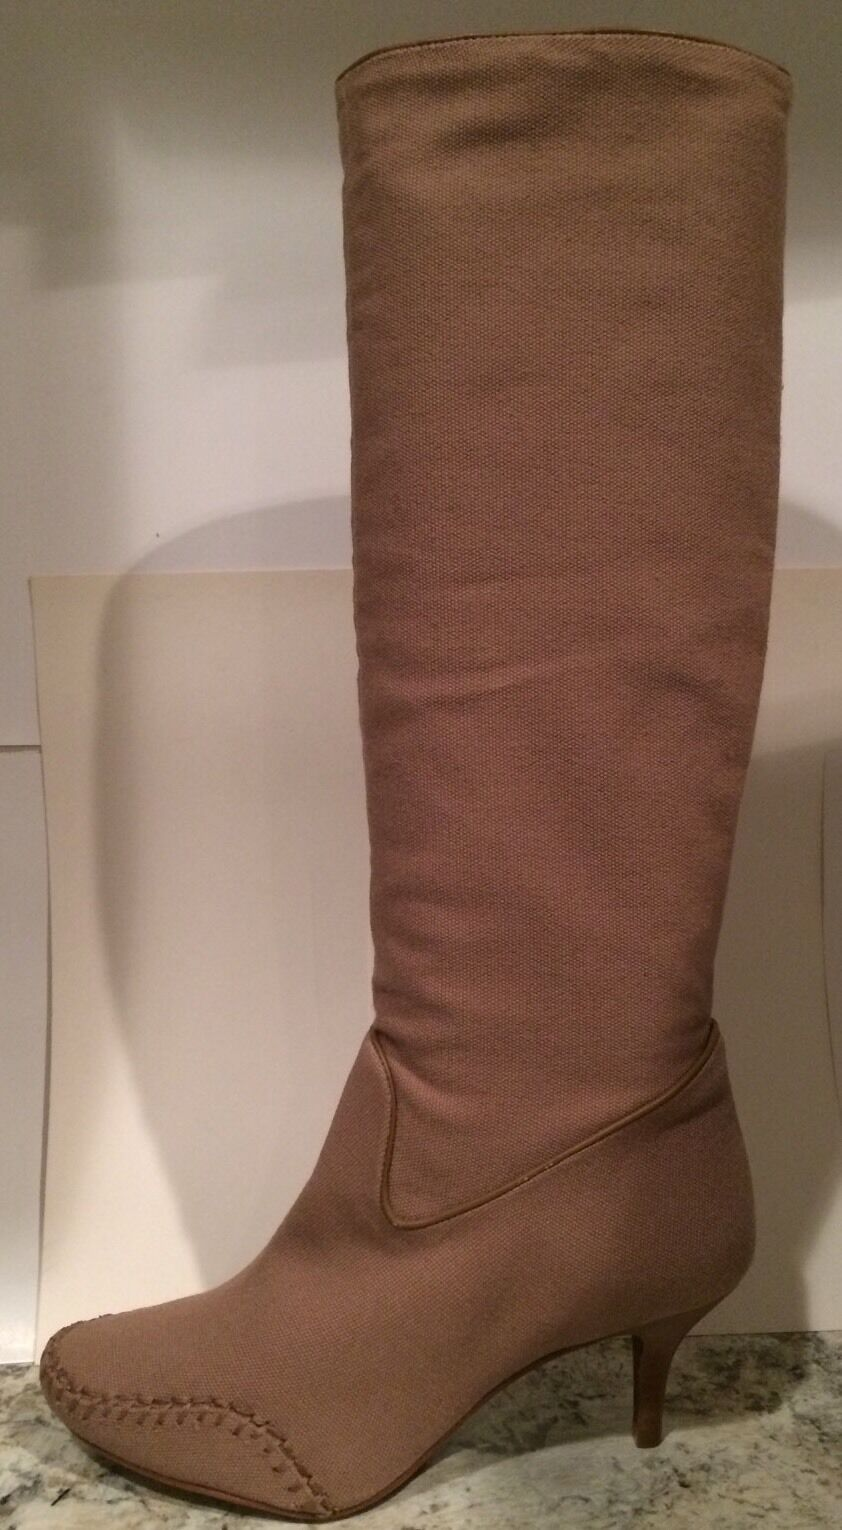 Max Azria Lexy Lexy Lexy Knee High Boots Leather Canvas Heels ( BCBG ) Taupe 39 8.5 Nice 6812fd